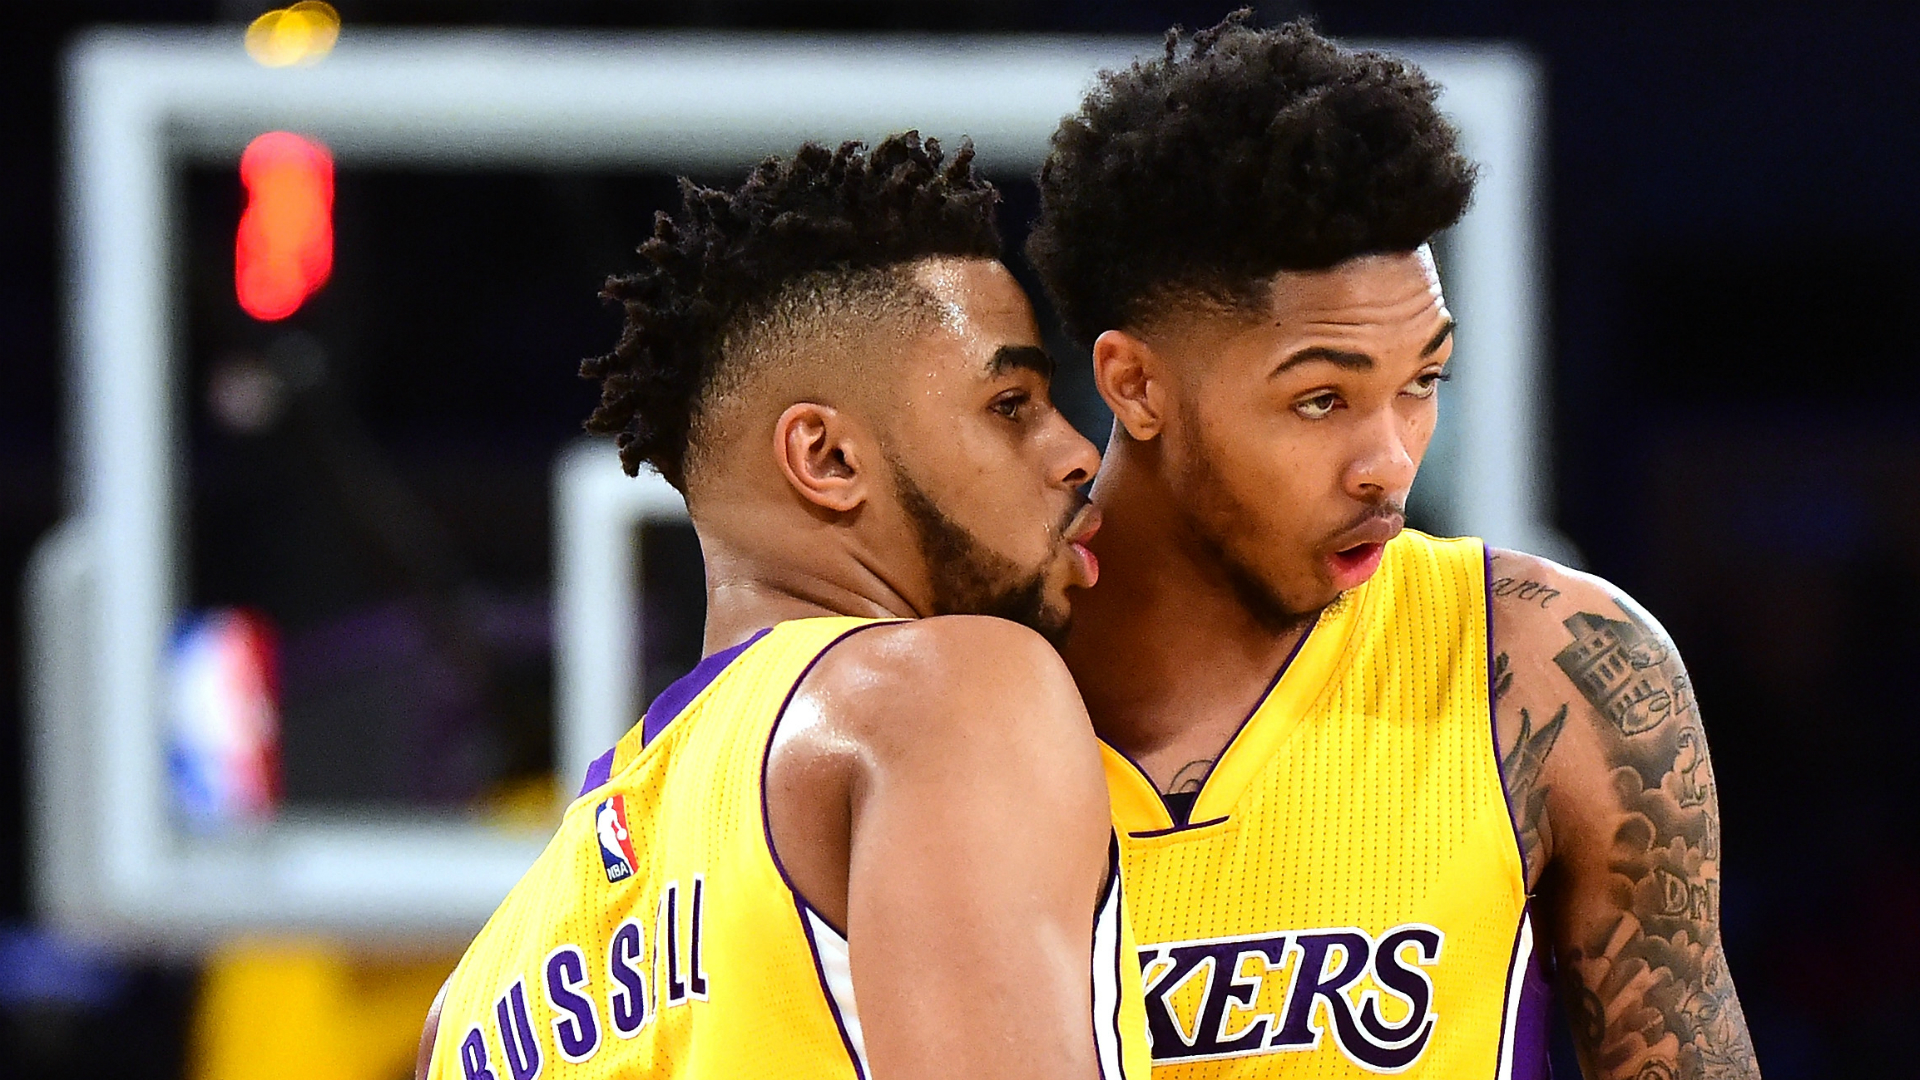 NBA trade rumors: Lakers have no plans to trade young core that has scouts raving